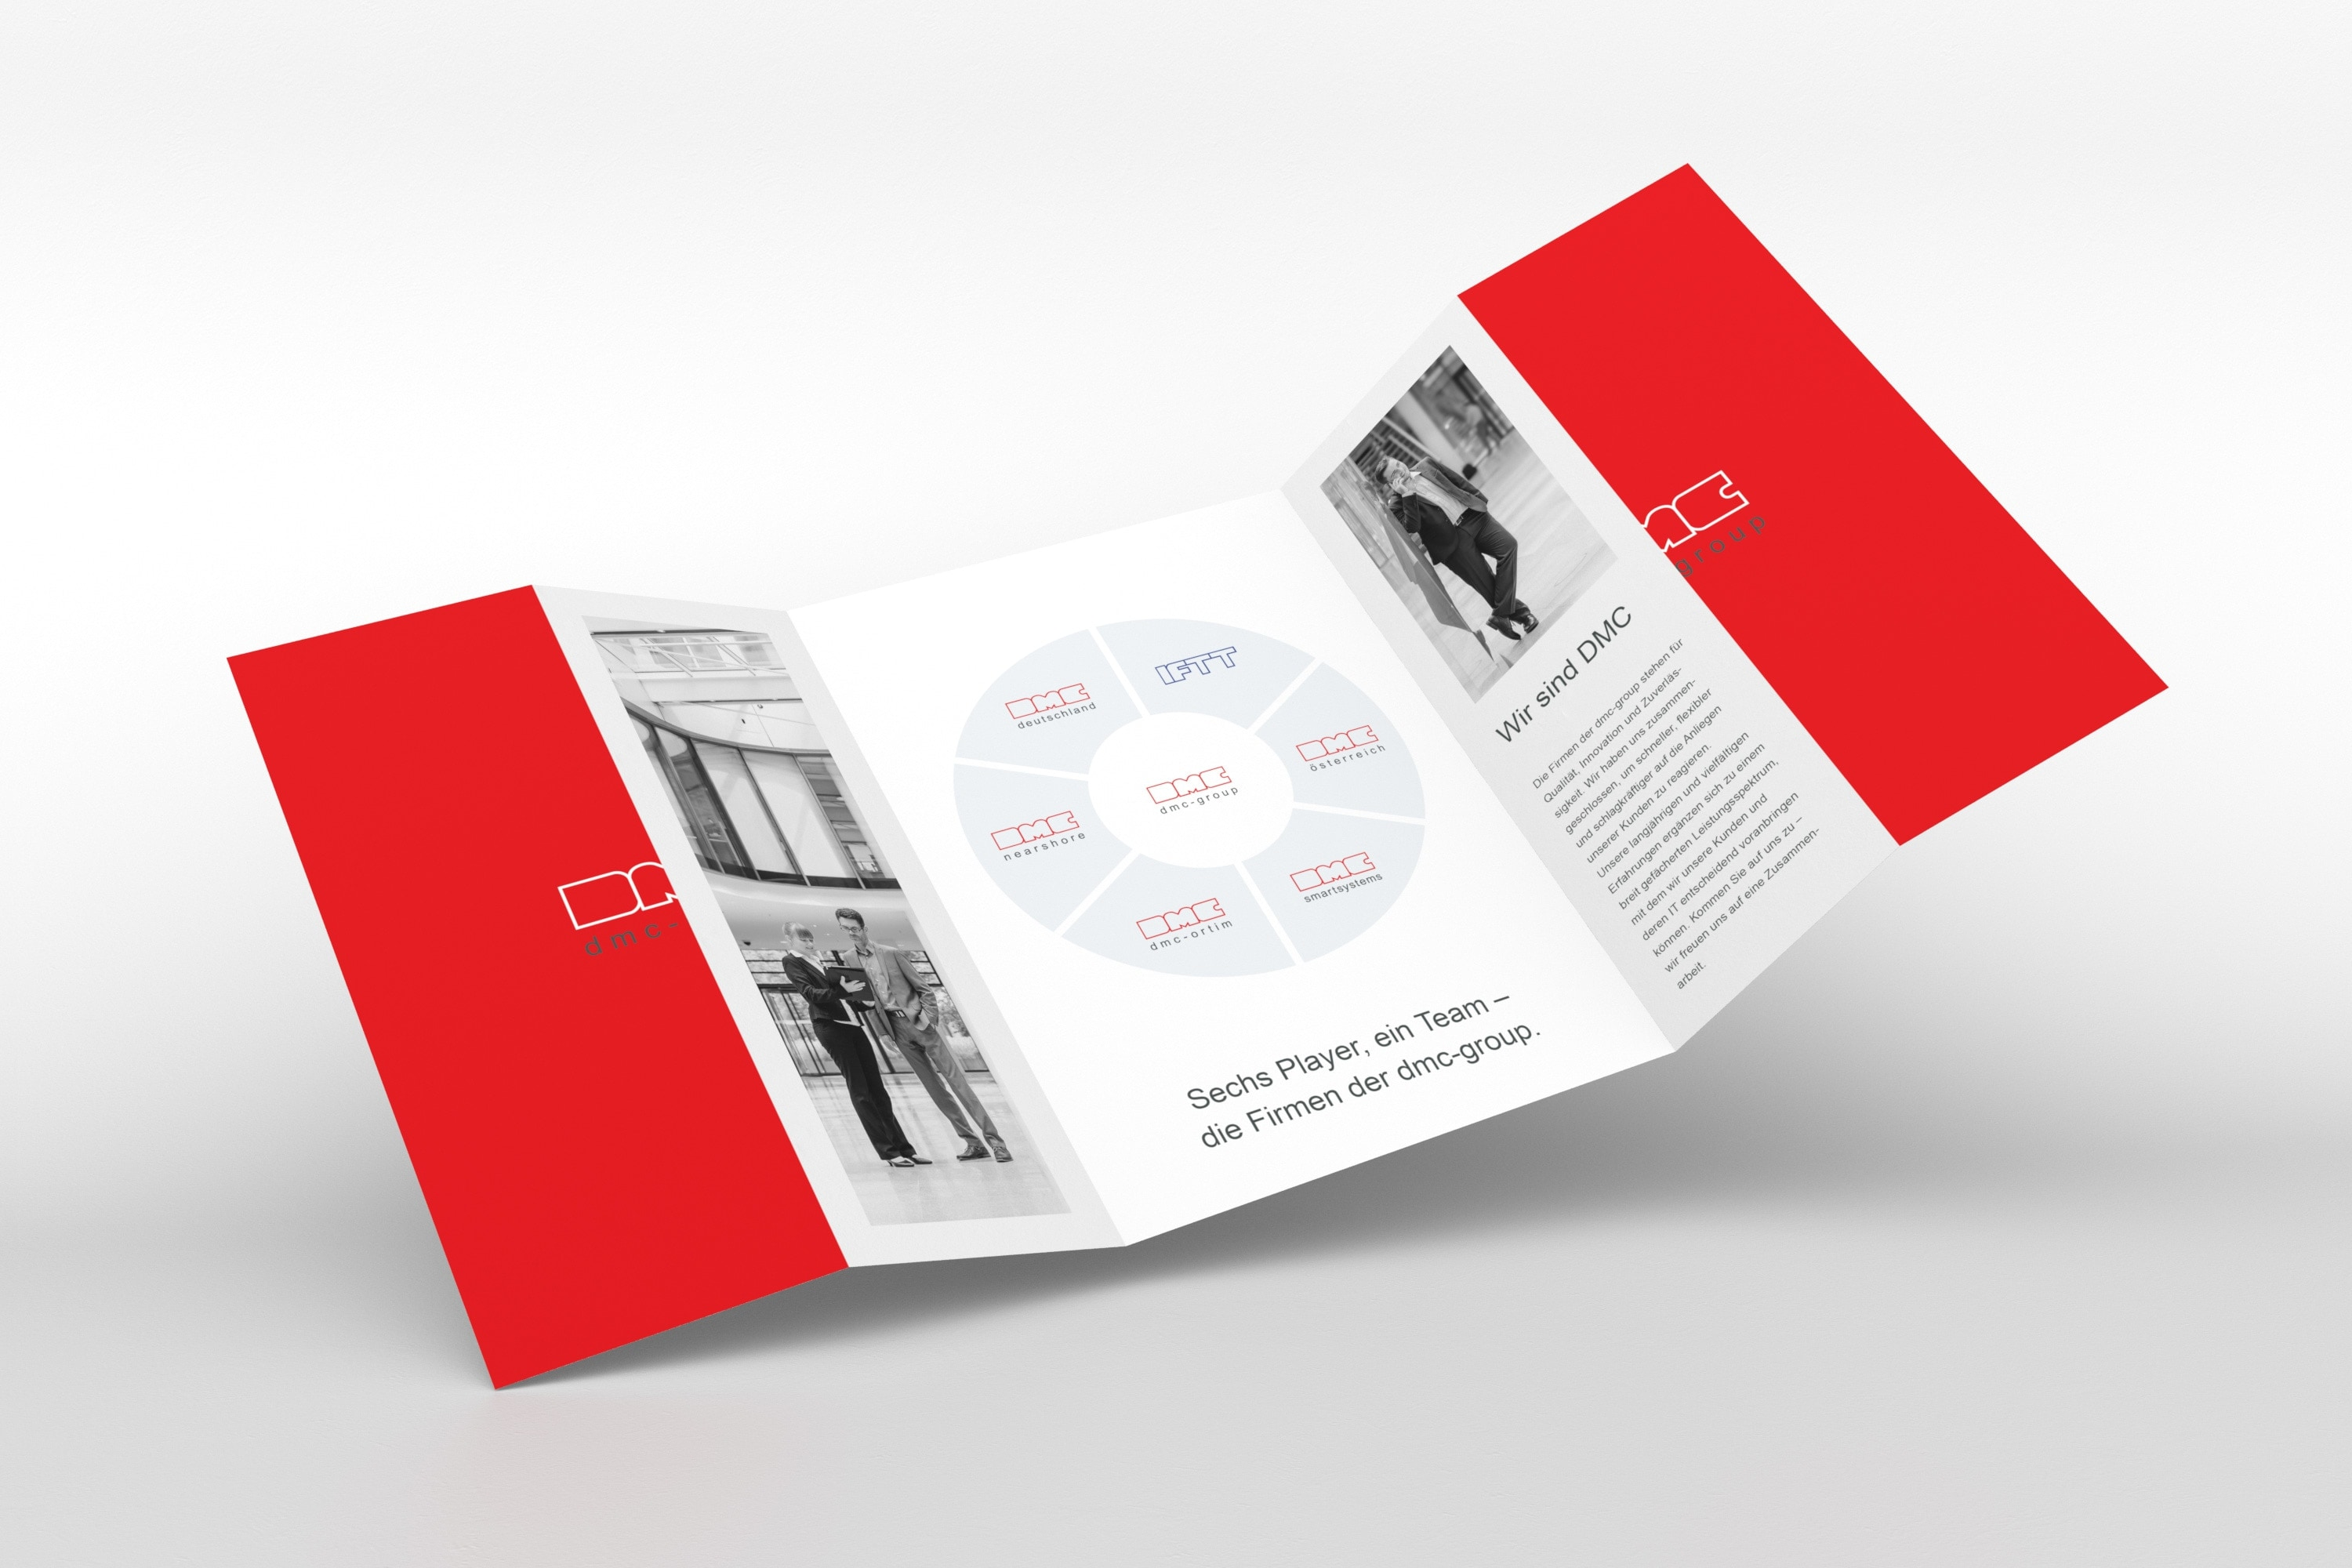 maxfath-dmc-group-muenchen-redesign-branding-flyer